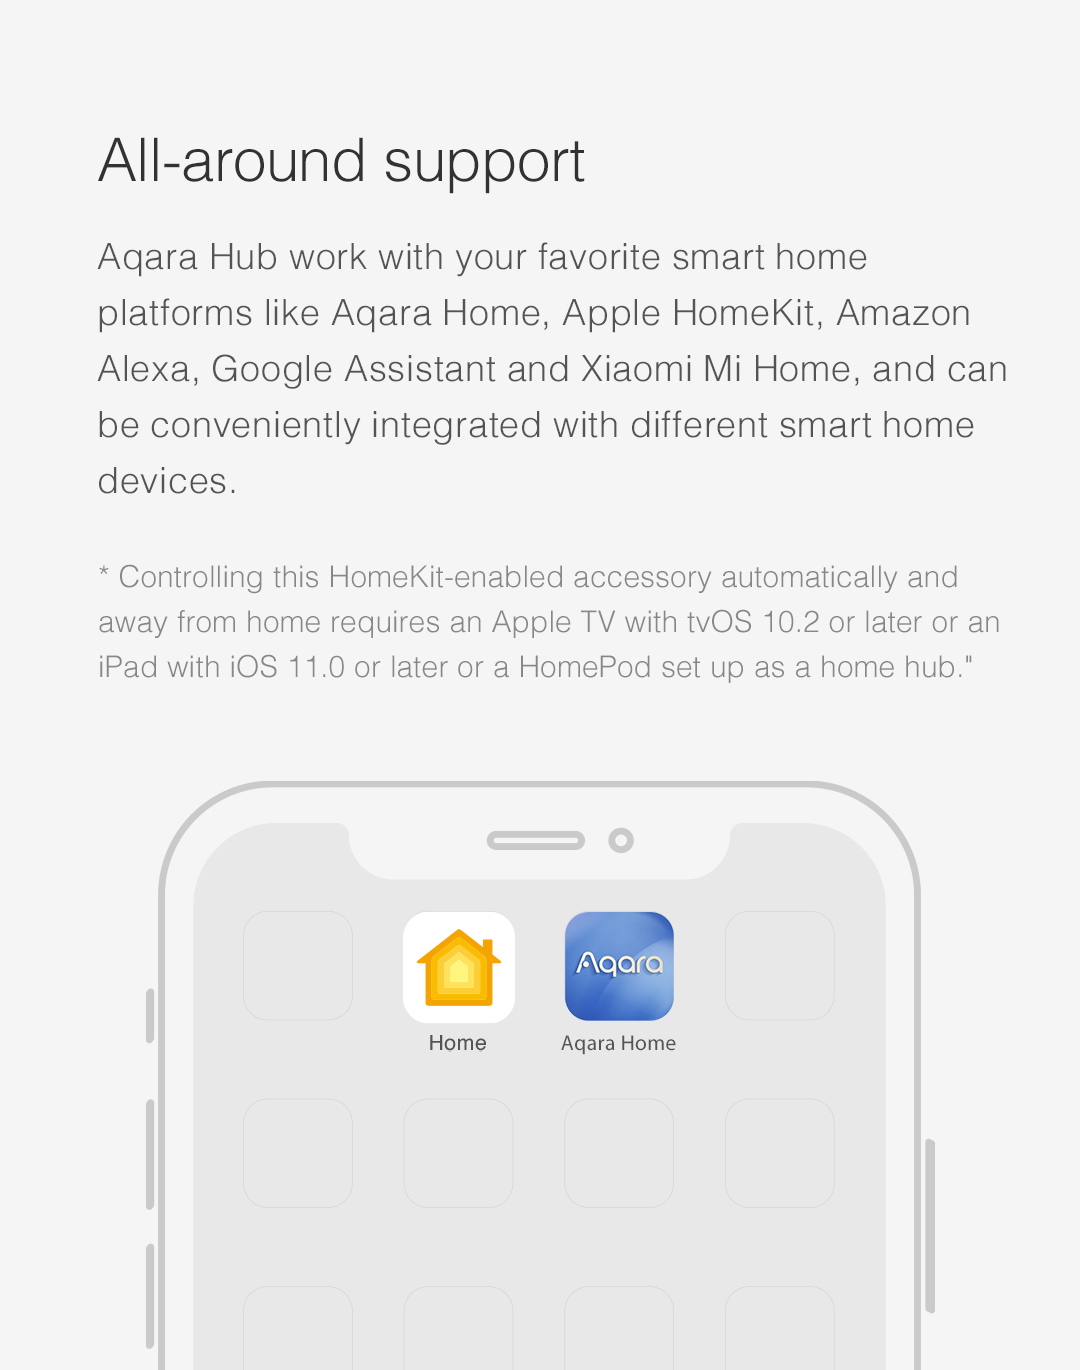 You can control Aqara accessories anywhere anytime via Apple Home or Mi Home.